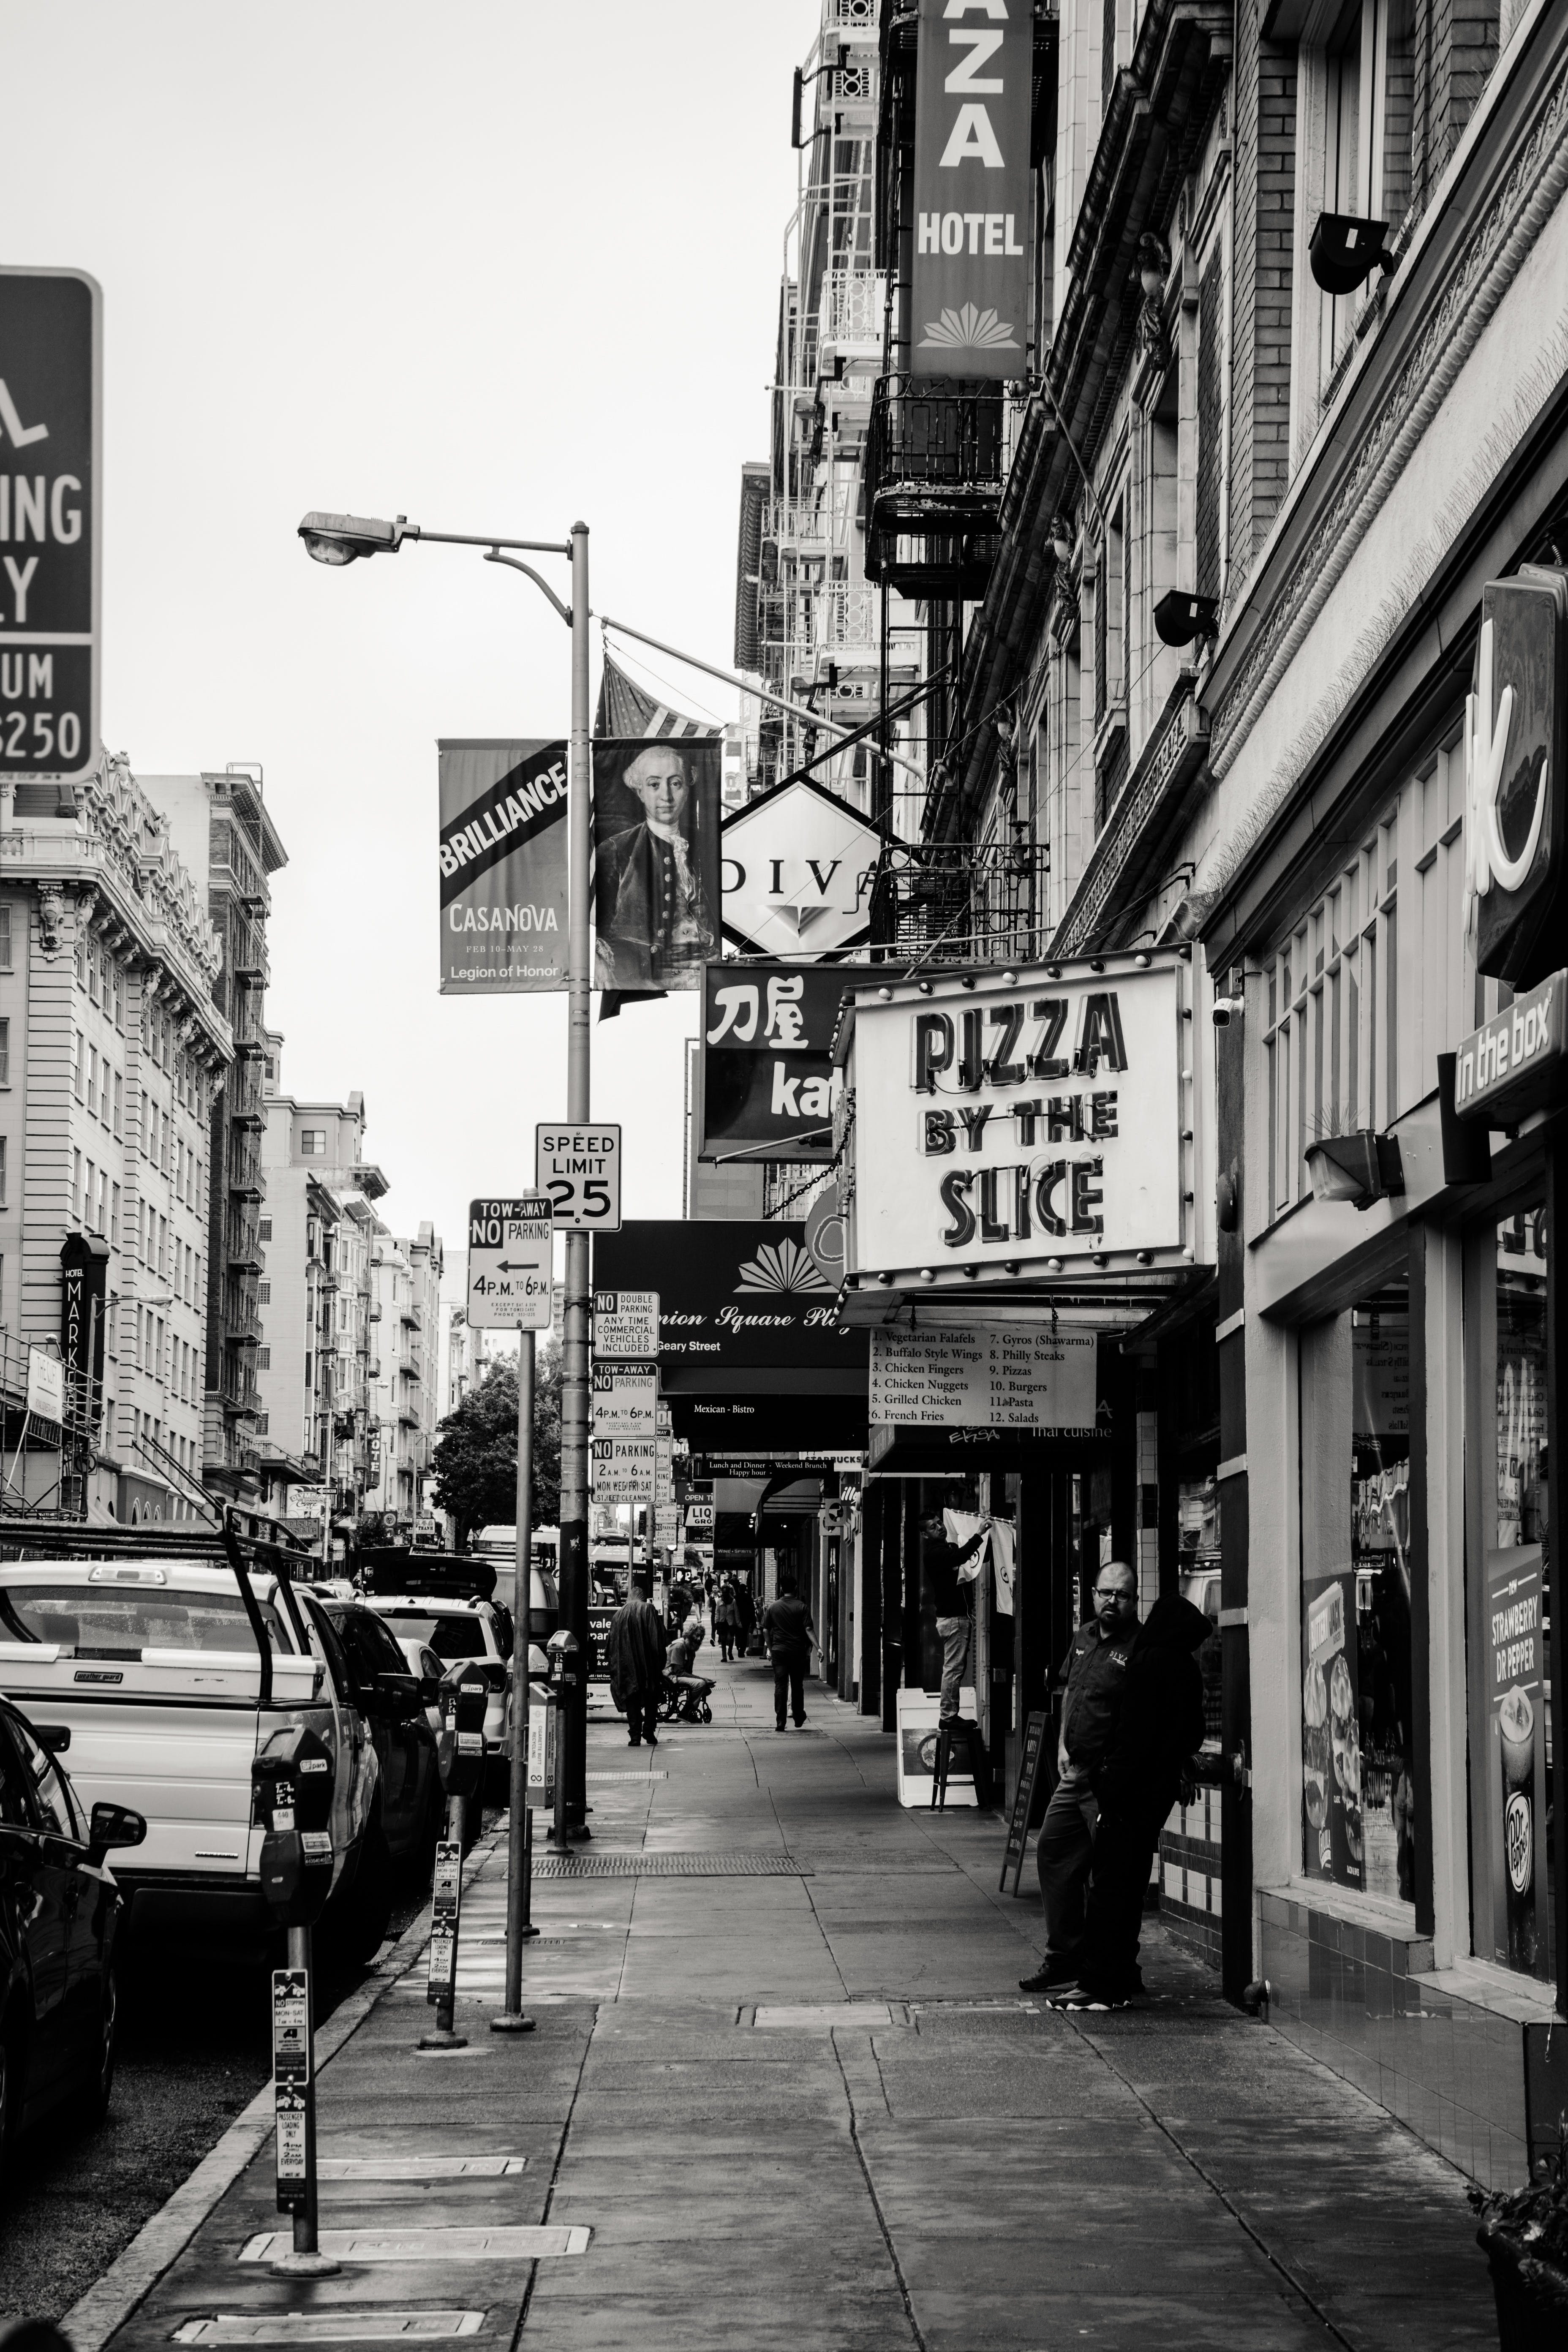 Grayscale Photography of Pizza by the Slice Signage